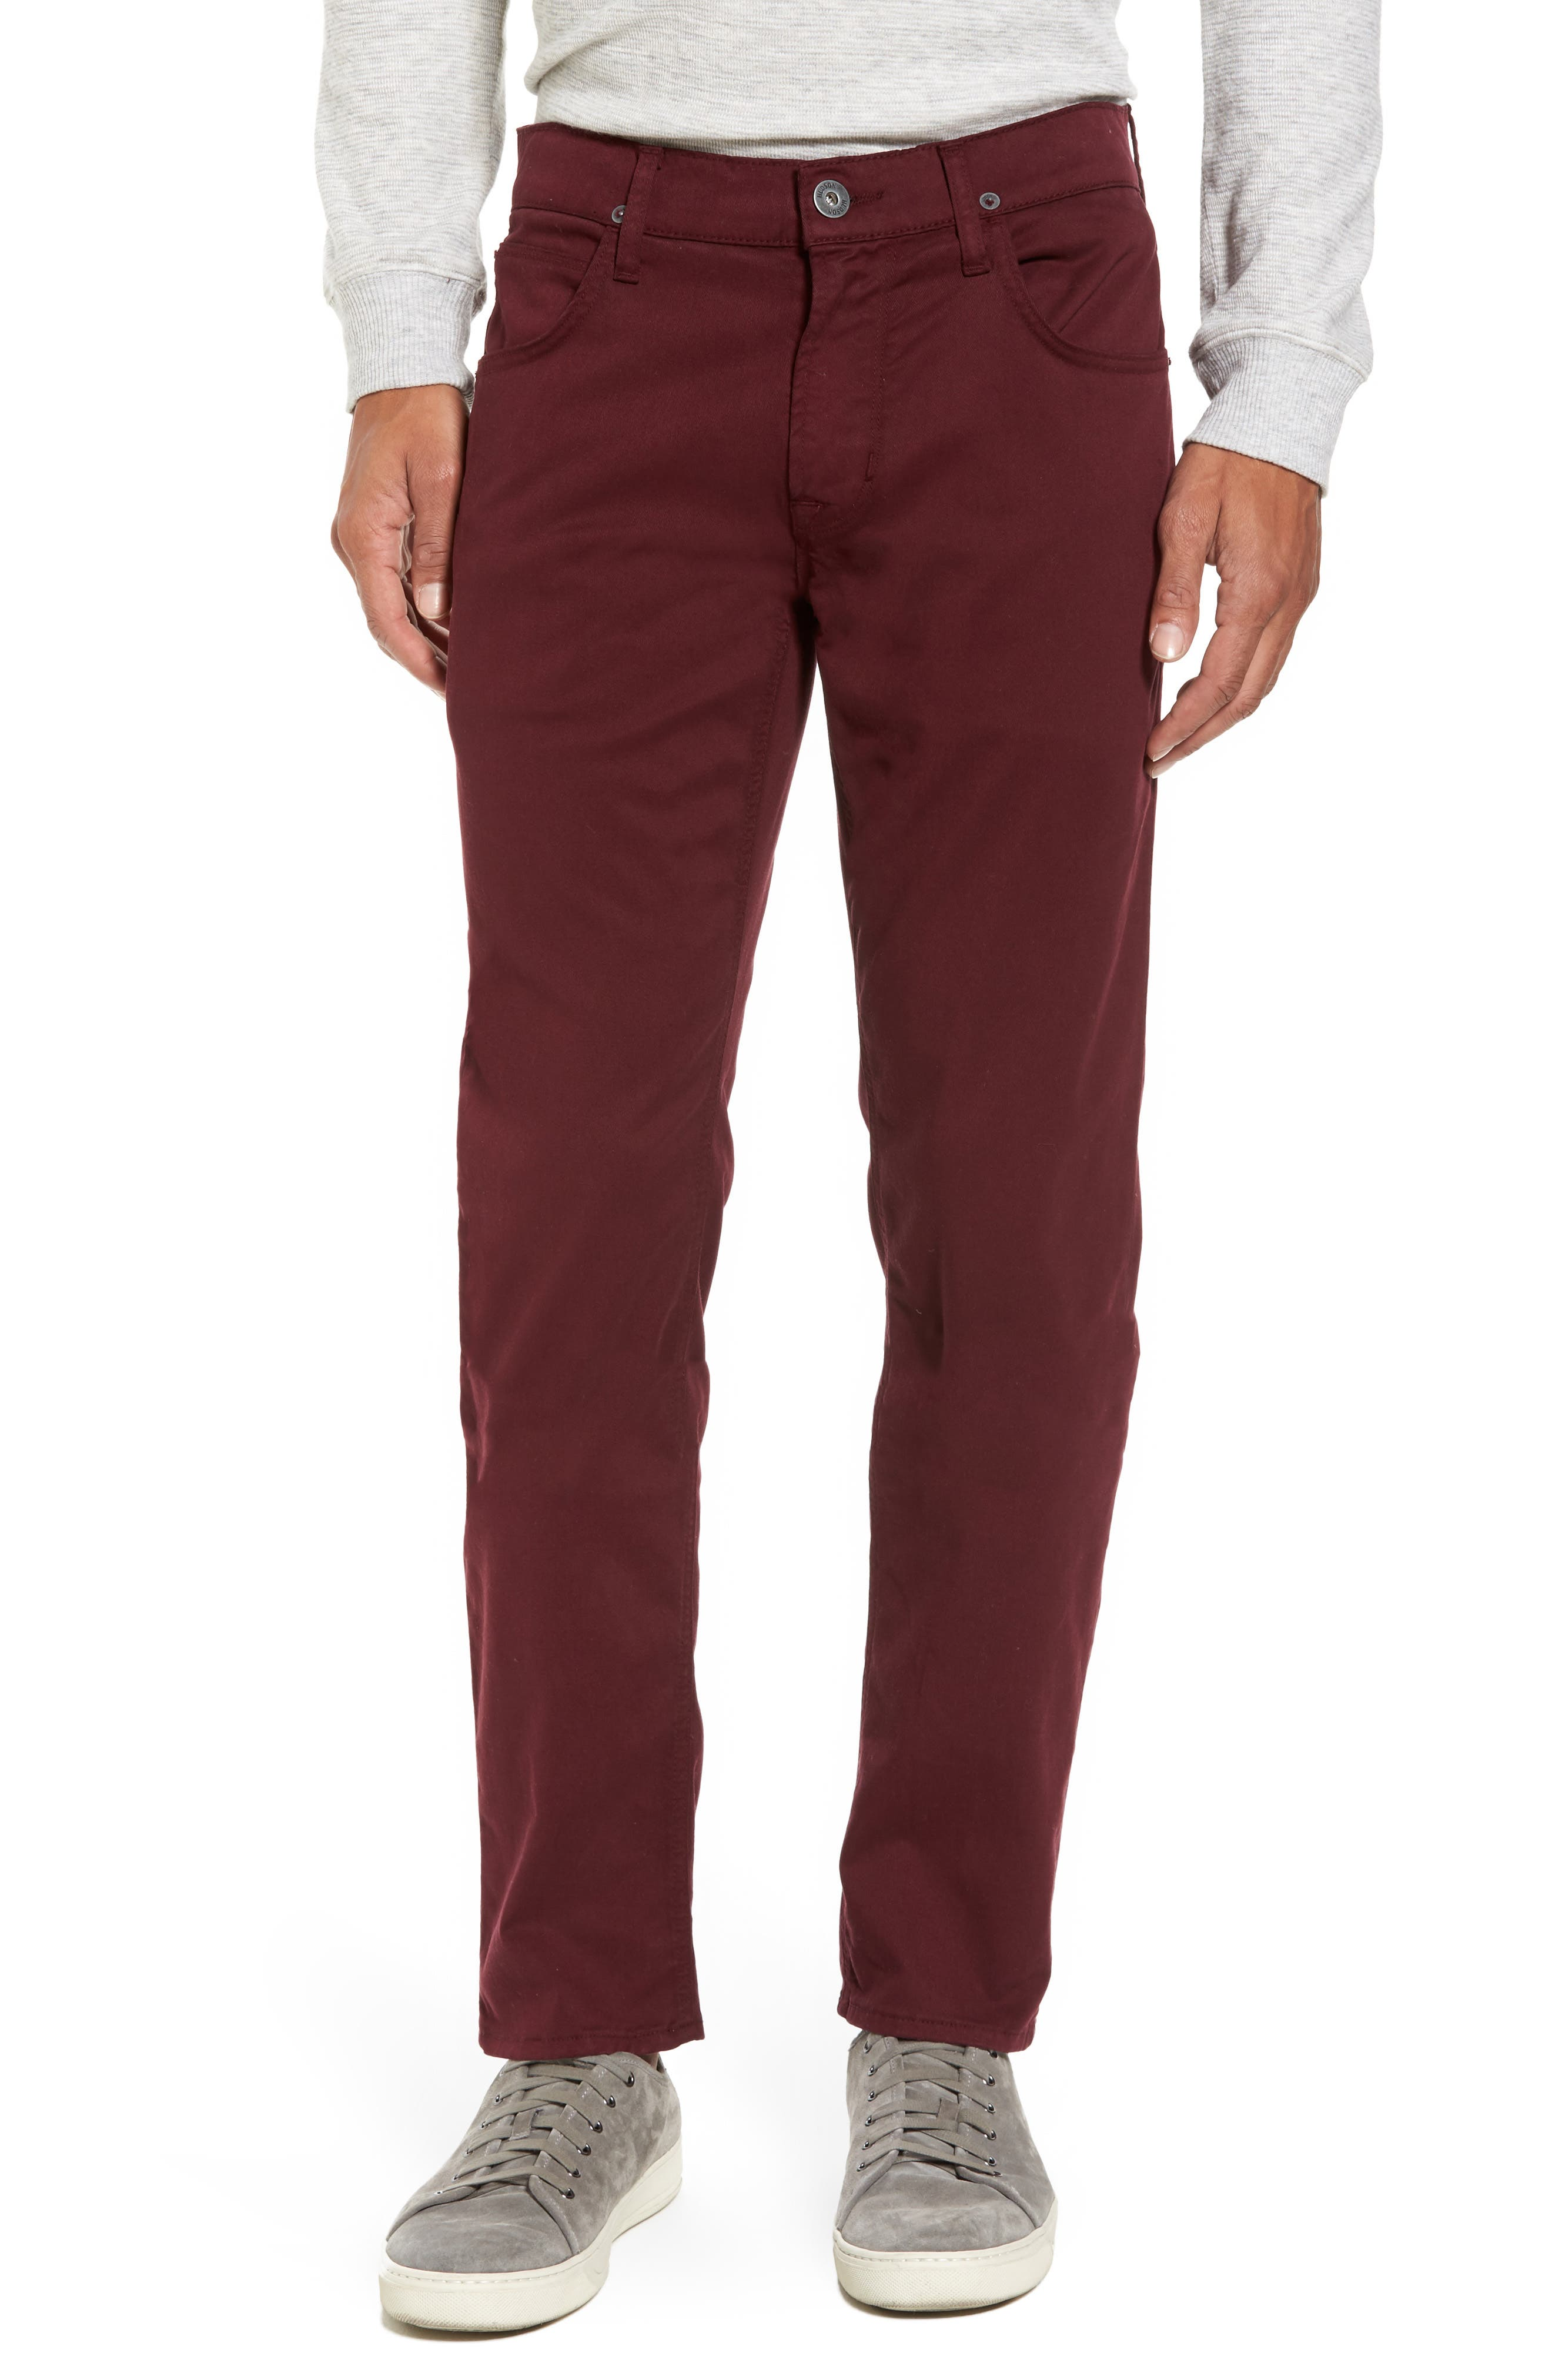 Blake Slim Fit Jeans,                             Main thumbnail 1, color,                             BURGUNDY